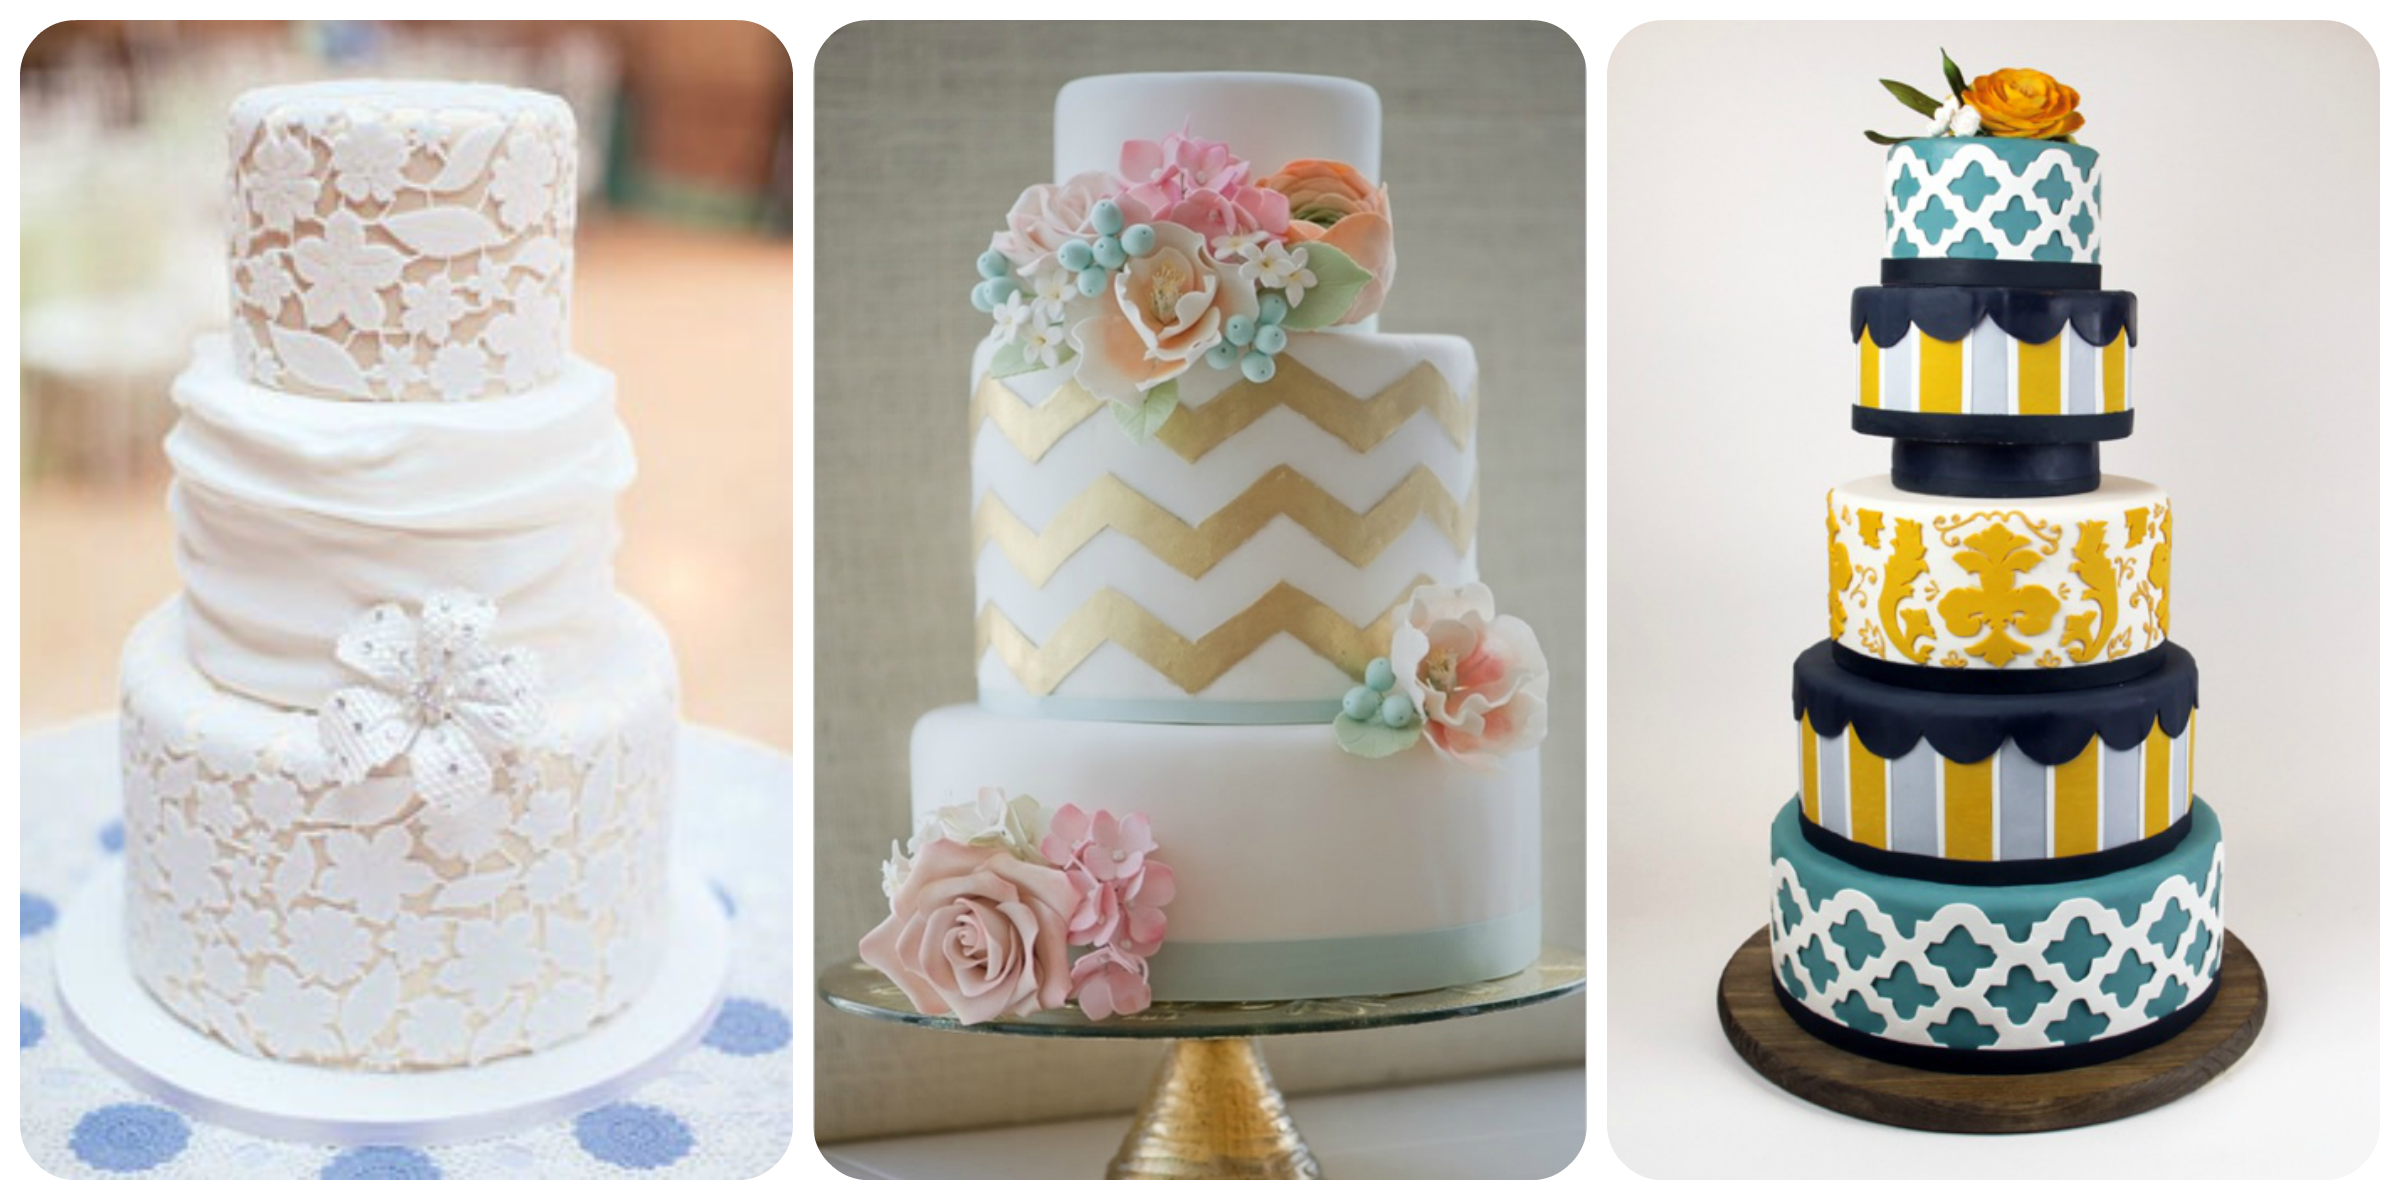 wedding cake tradition | out of the boxx events